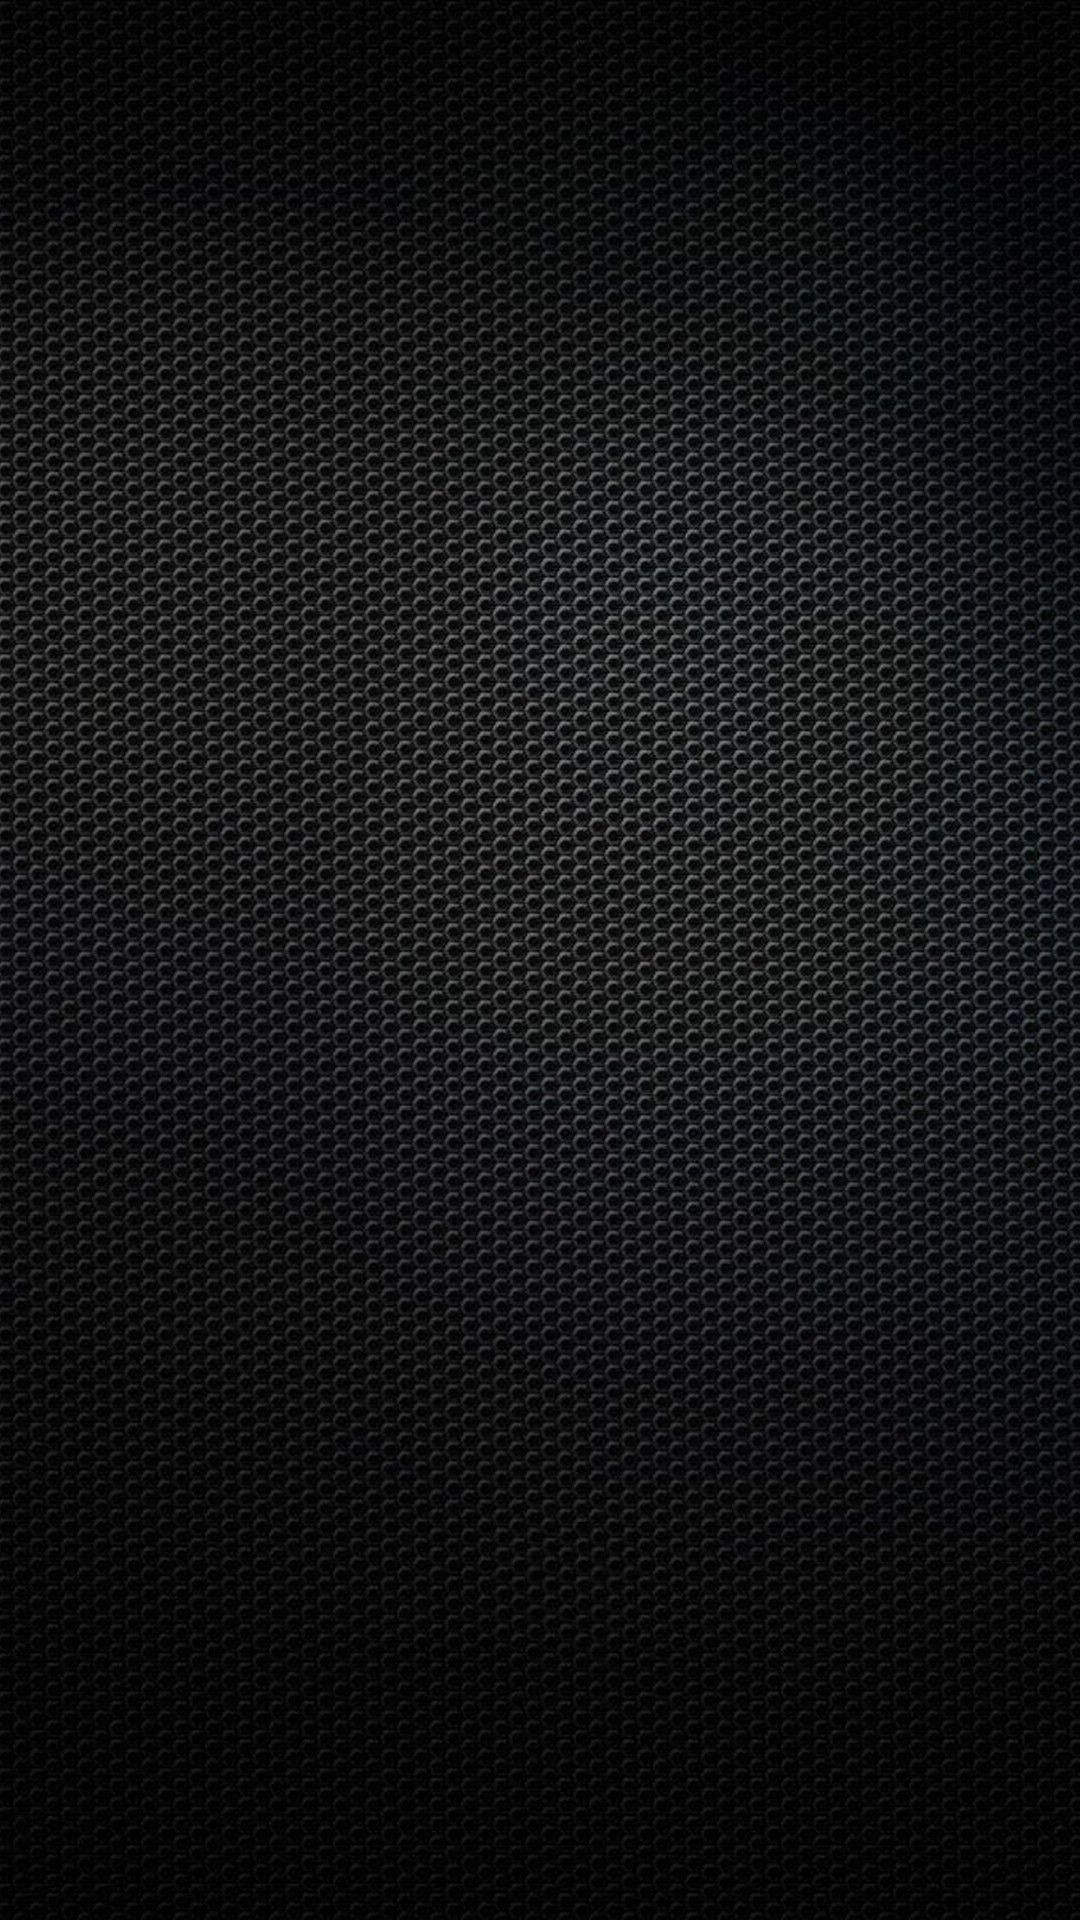 Black Iphone 5 Wallpapers Top Free Black Iphone 5 Backgrounds Wallpaperaccess